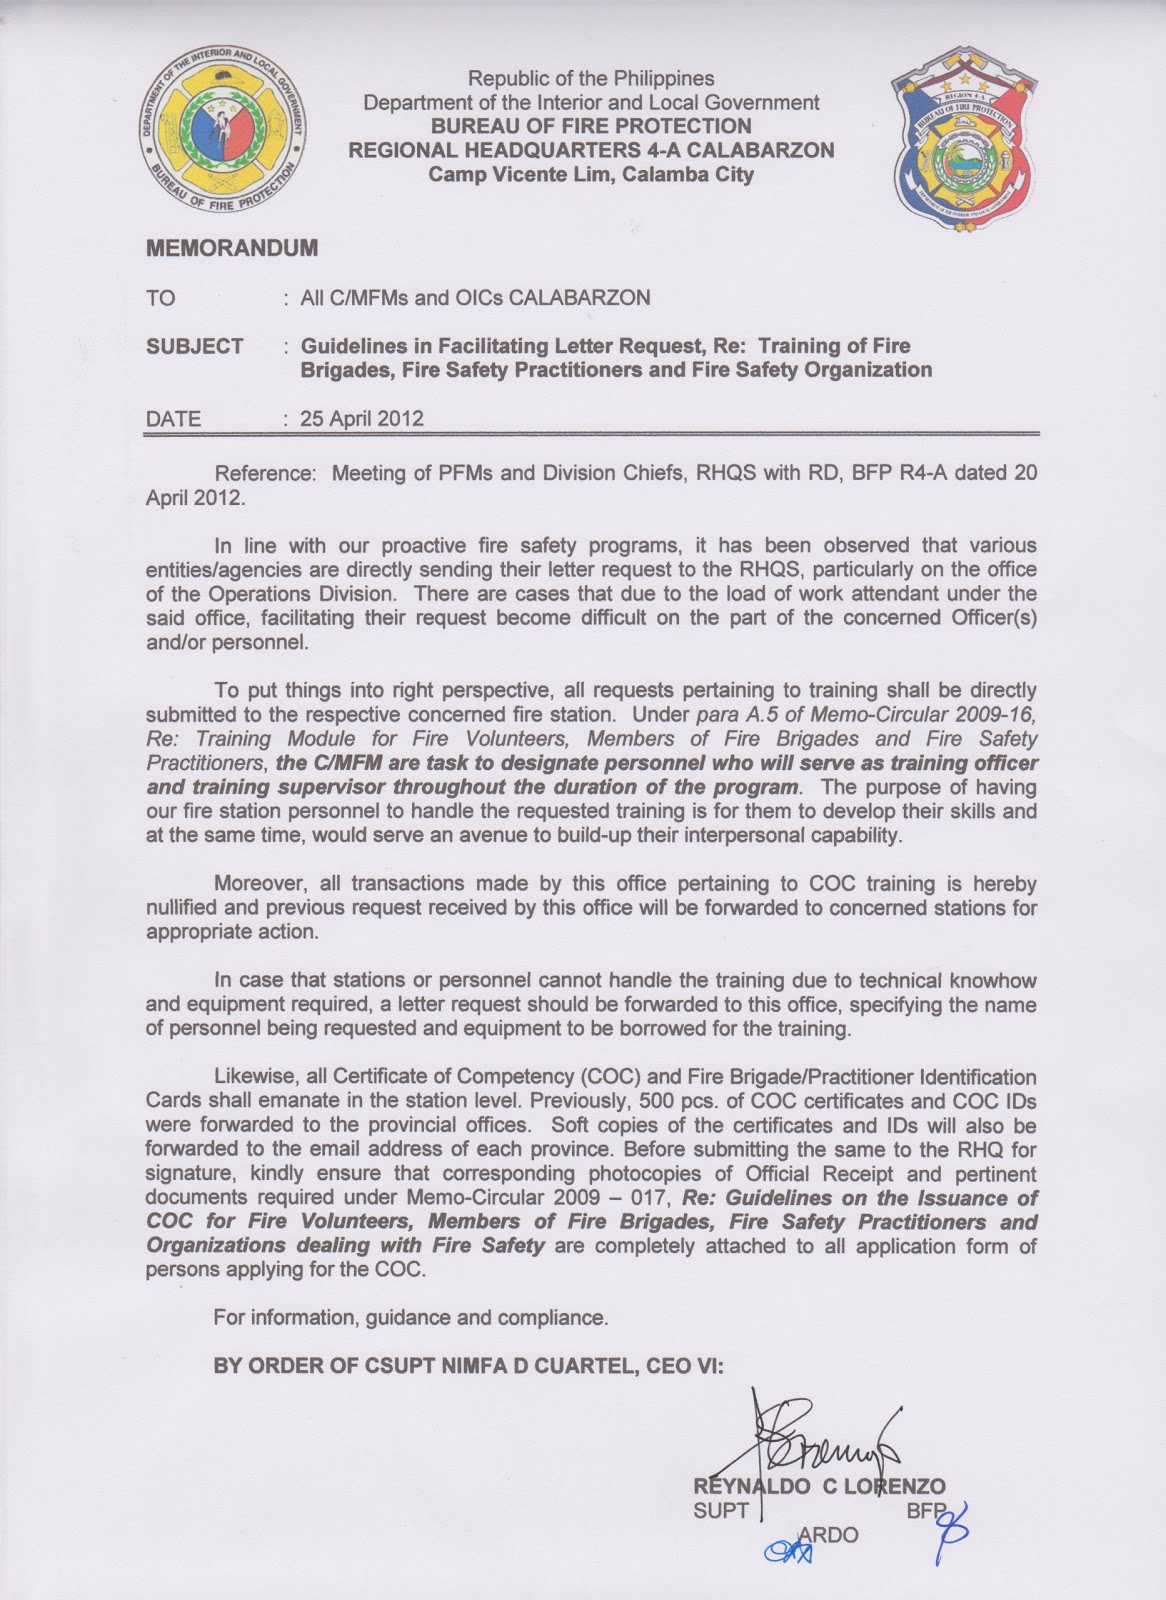 opd batangas archives memo guidelines in facilitating letter memo guidelines in facilitating letter request re training of fire brigades fire safety practitioners and fire safety organization